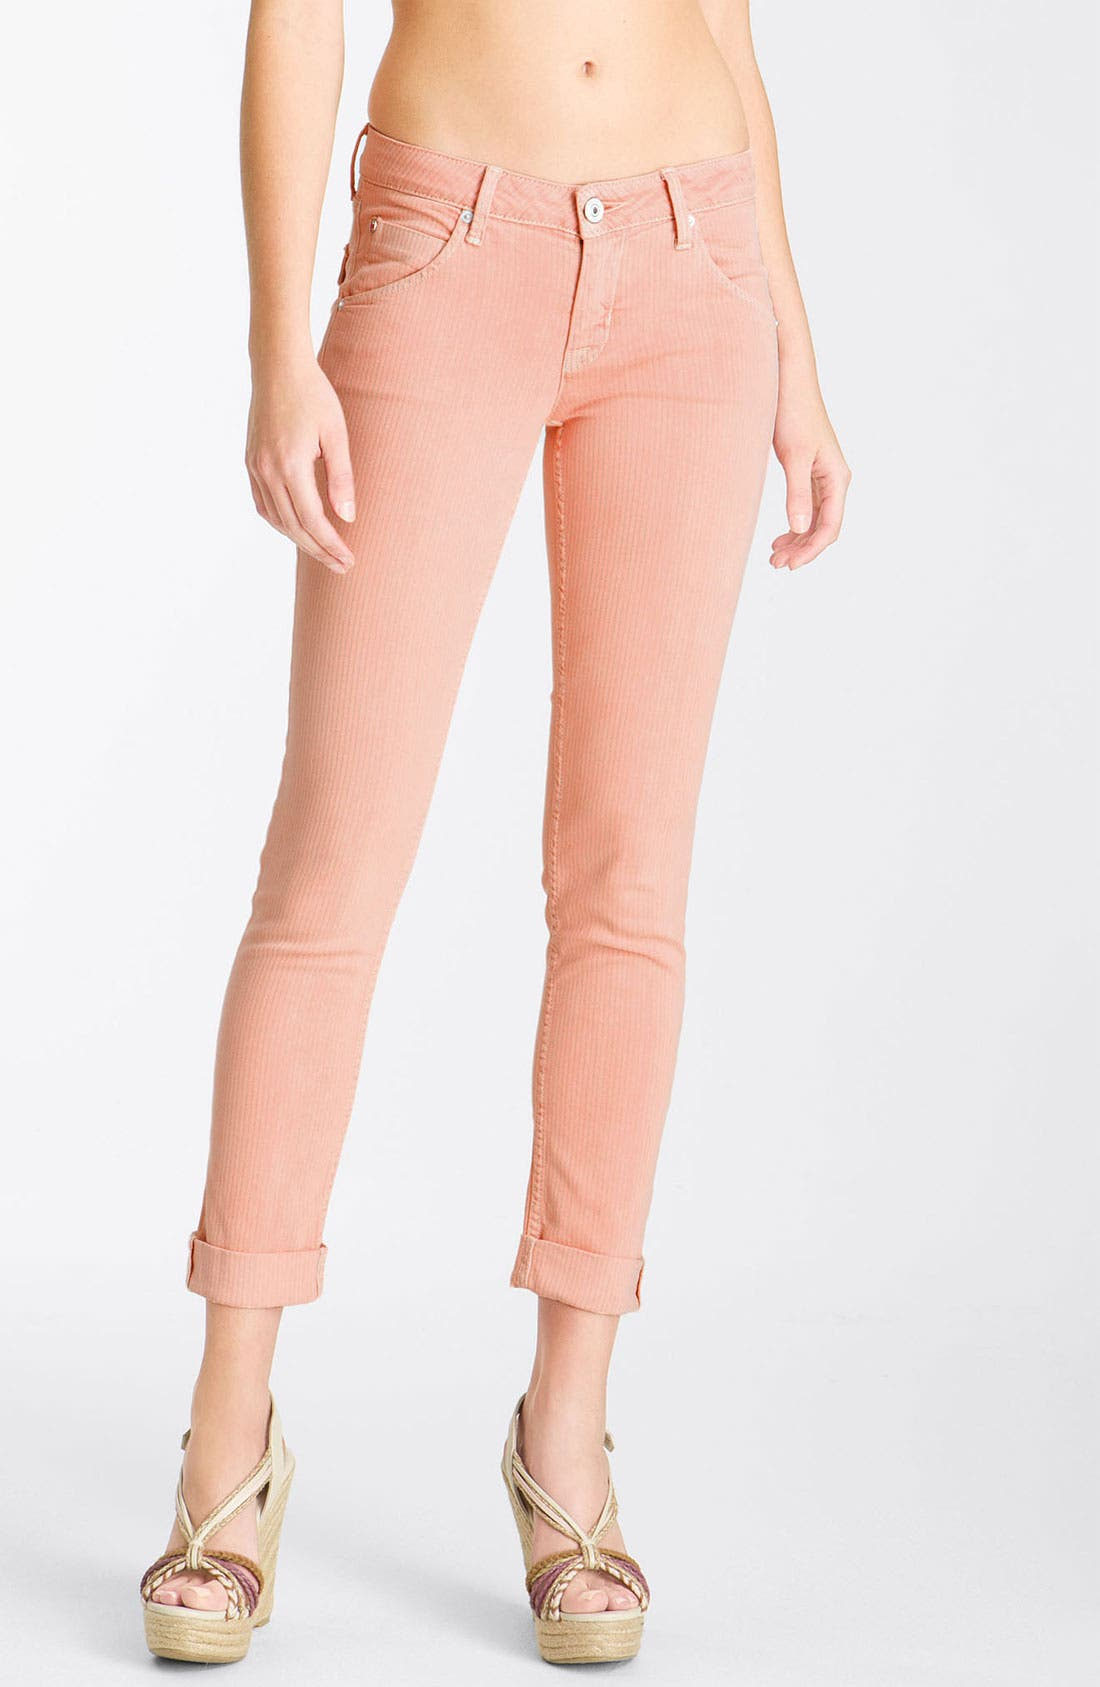 Alternate Image 1 Selected - Hudson Jeans 'Bacara' Crop Straight Leg Jeans (Peach)